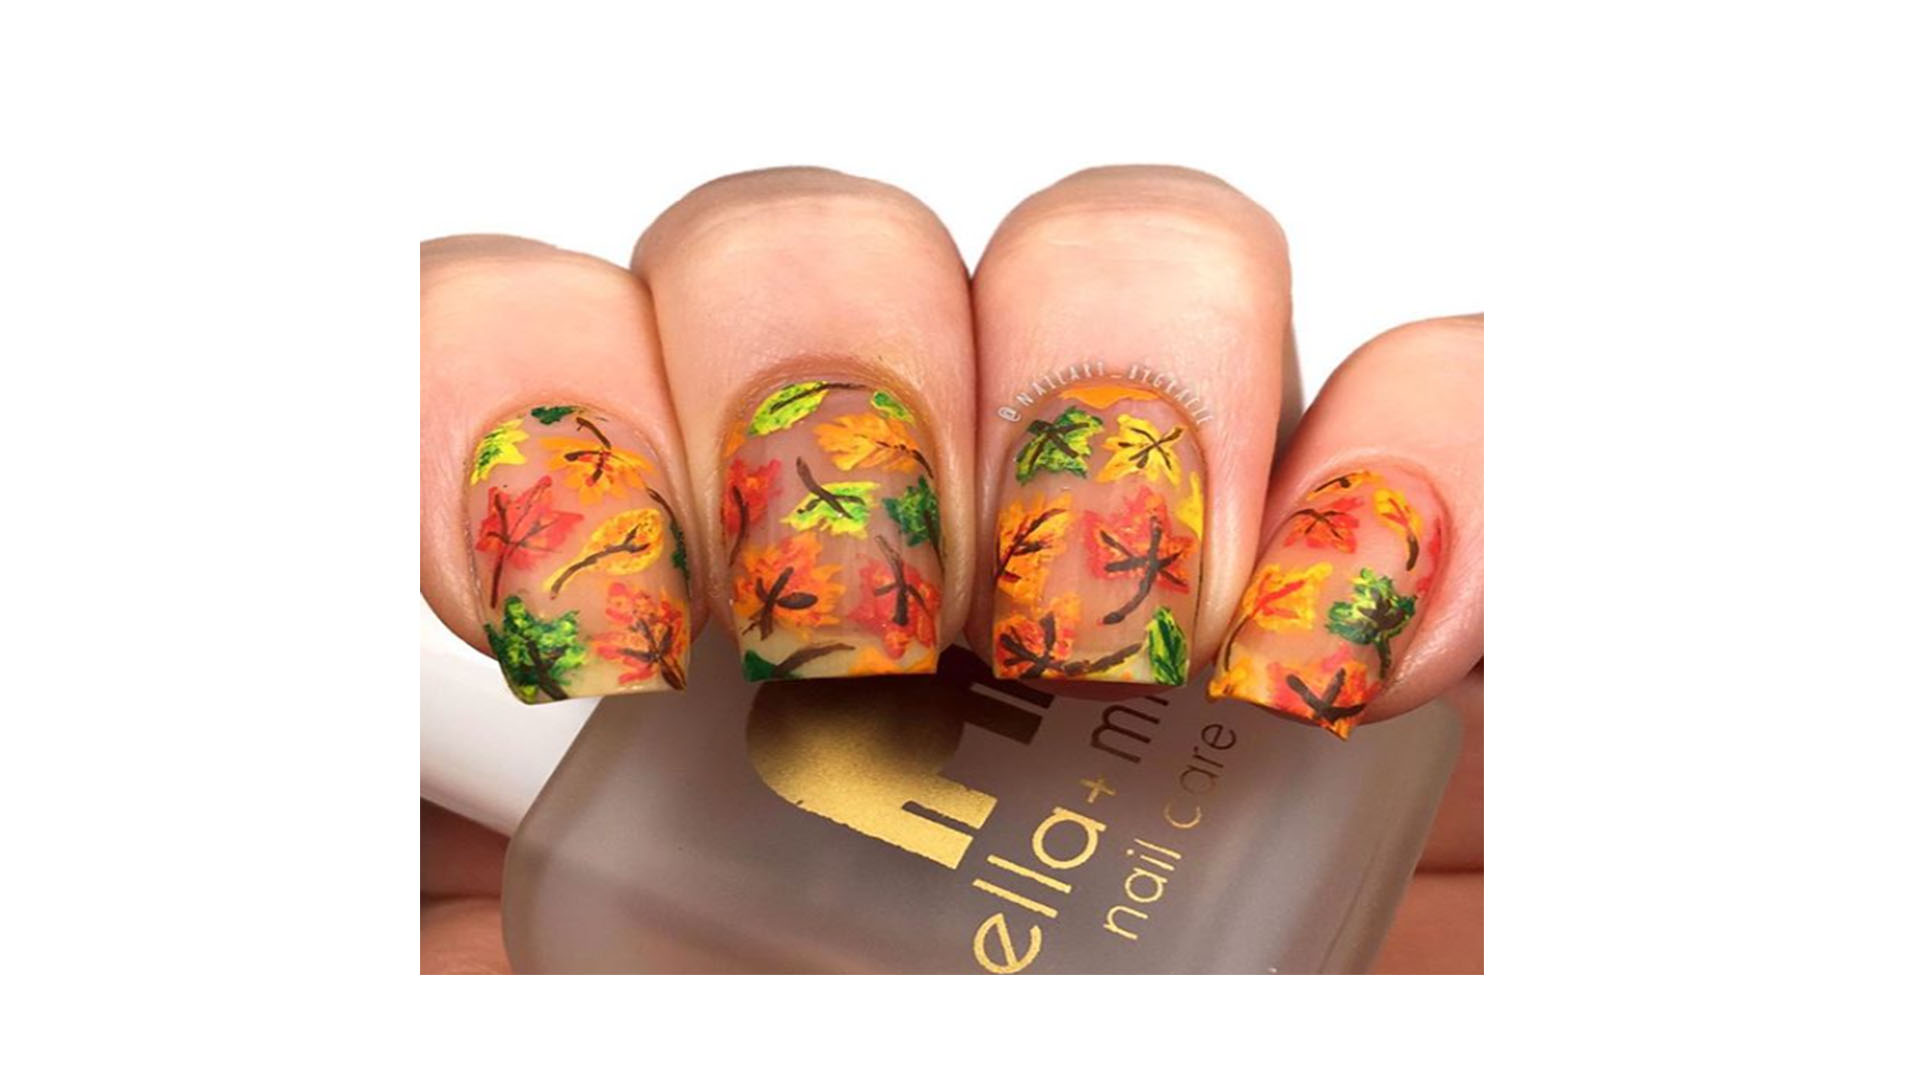 RX_1908_Thanskgiving Nails_Trendy Leaves